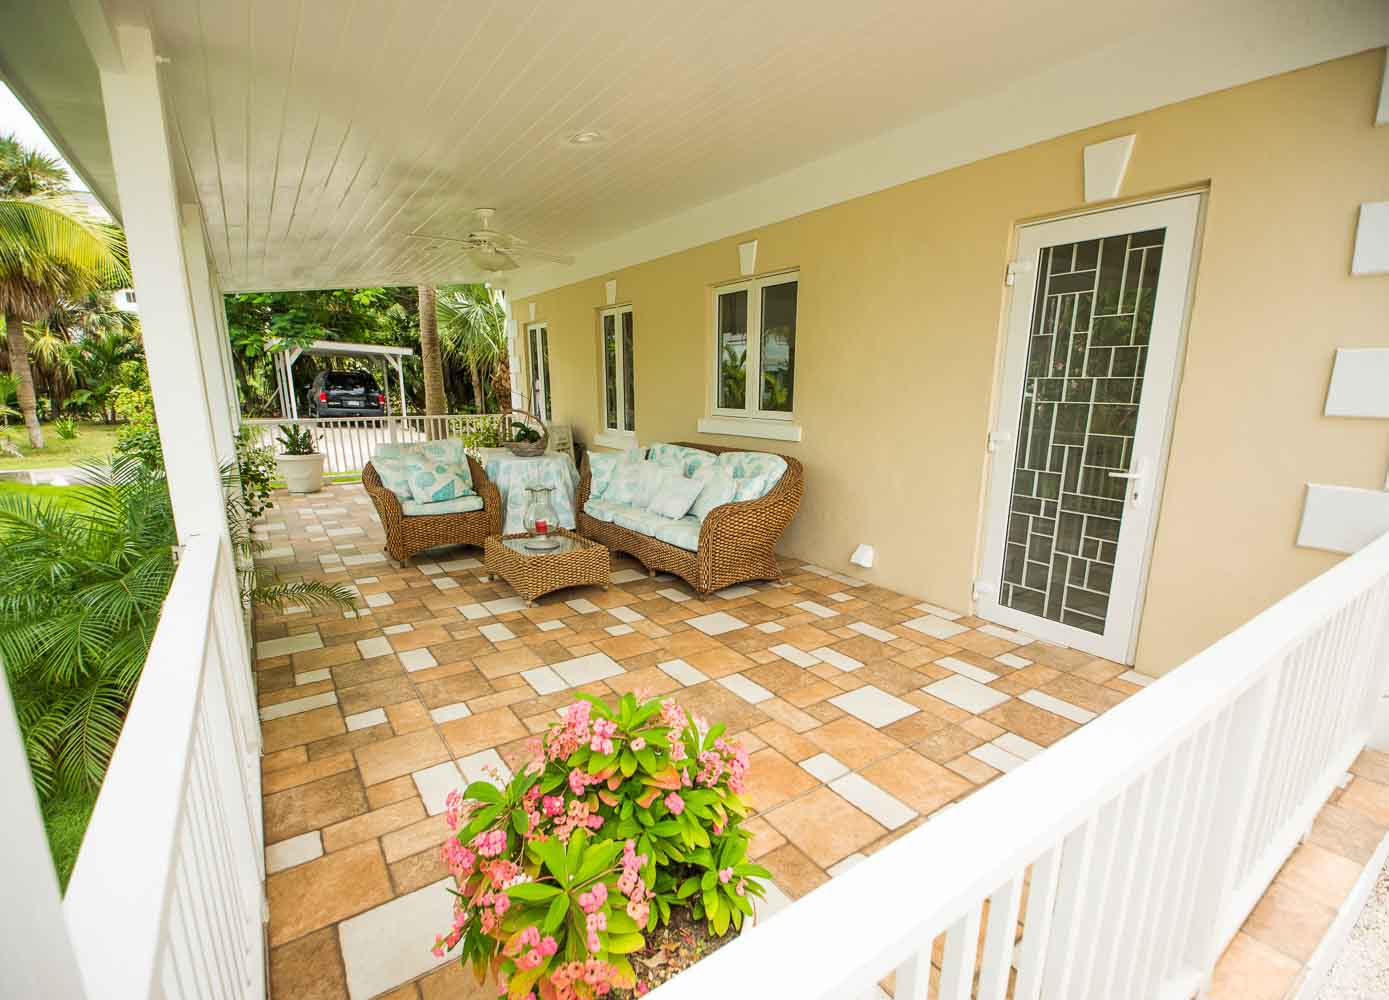 Single Family Home for Sale at Mint Condition Home in Cable Beach - MLS 31114 Cable Beach, Nassau And Paradise Island, Bahamas